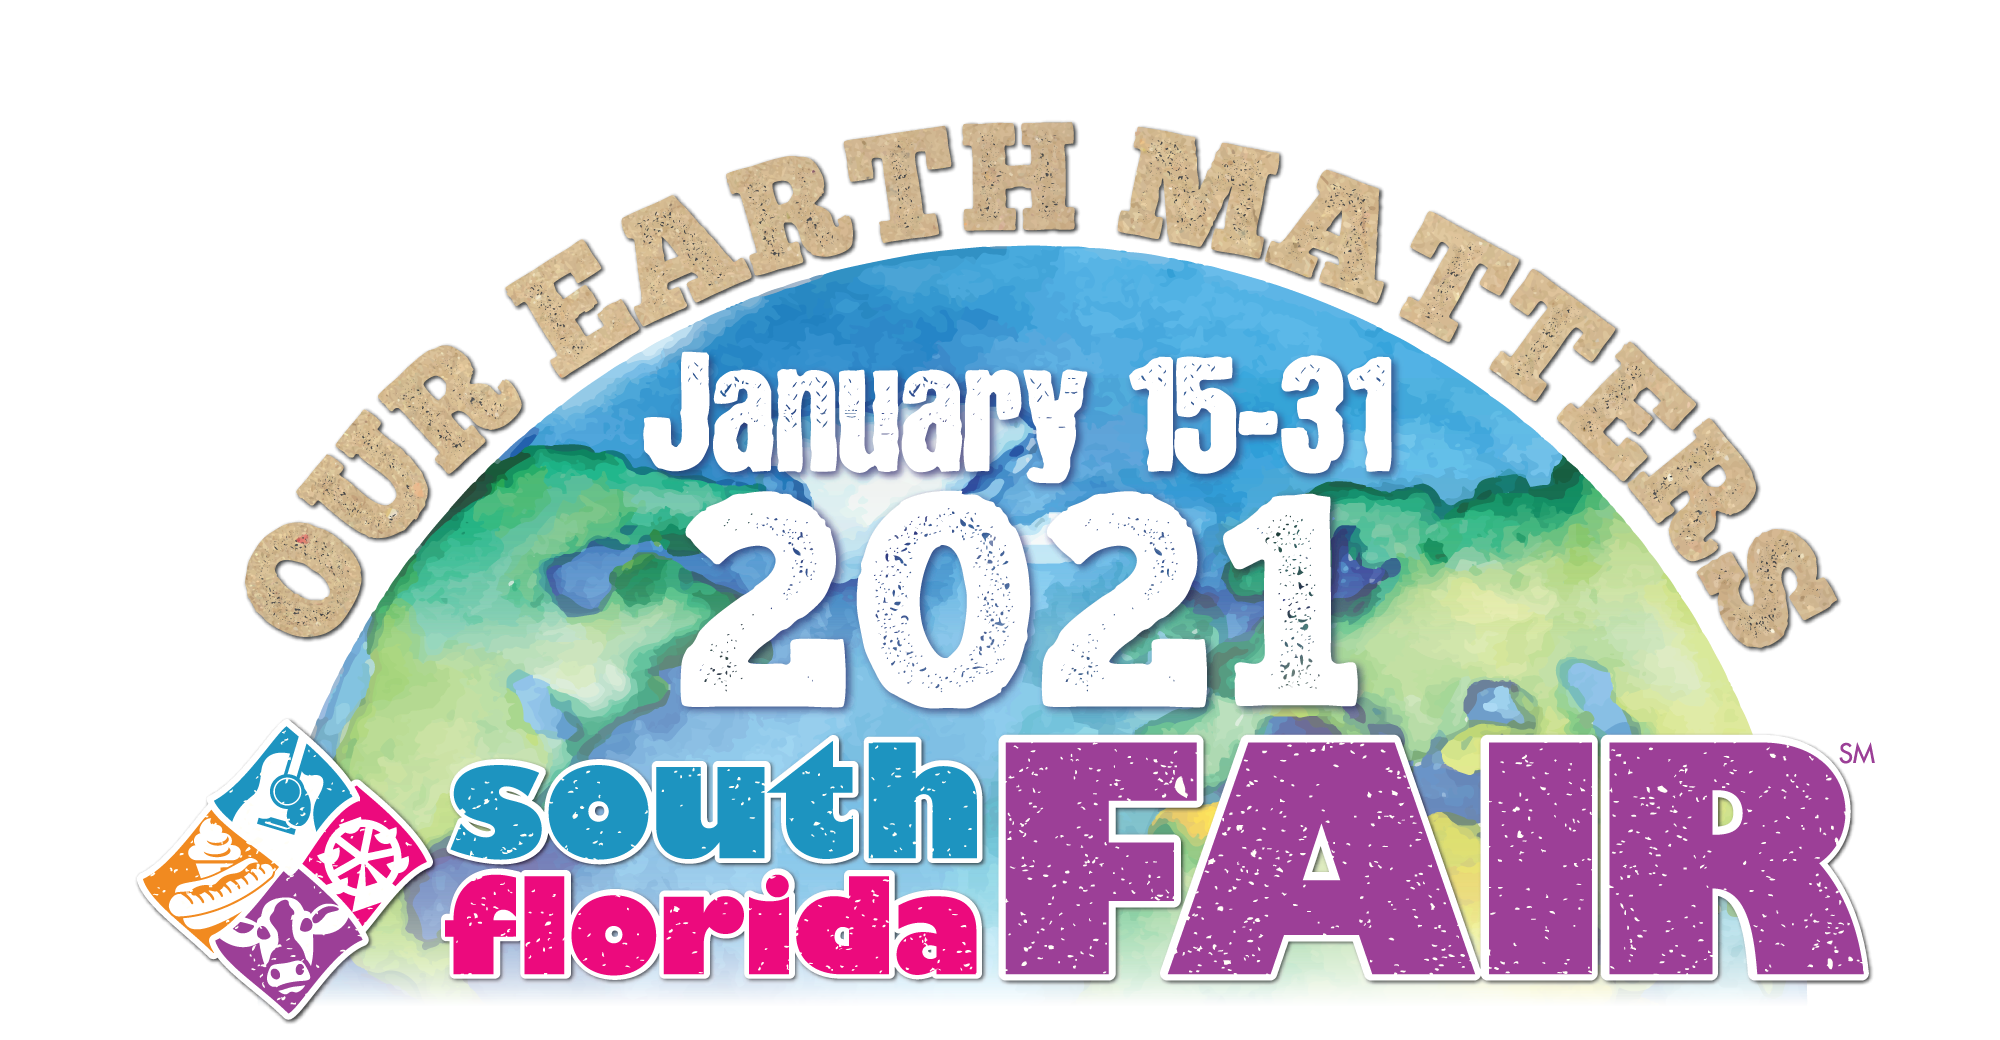 Our Earth Matters At The 2021 South Florida Fair, Jan. 15 31 For South Florida Fairgrounds Events Calendar